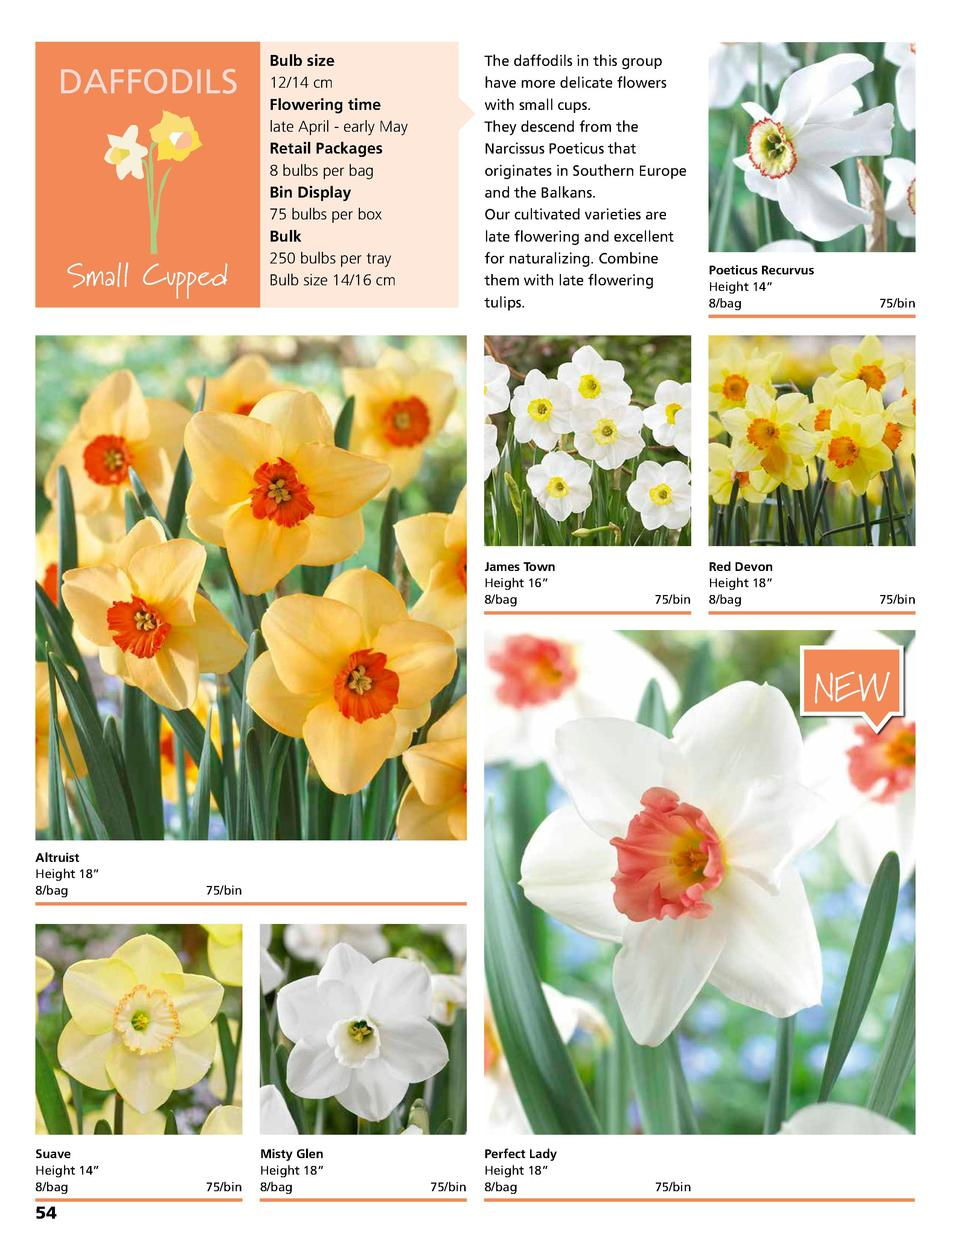 DAFFODILS  Small Cupped  Bulb size 12 14 cm Flowering time late April - early May Retail Packages 8 bulbs per bag Bin Disp...